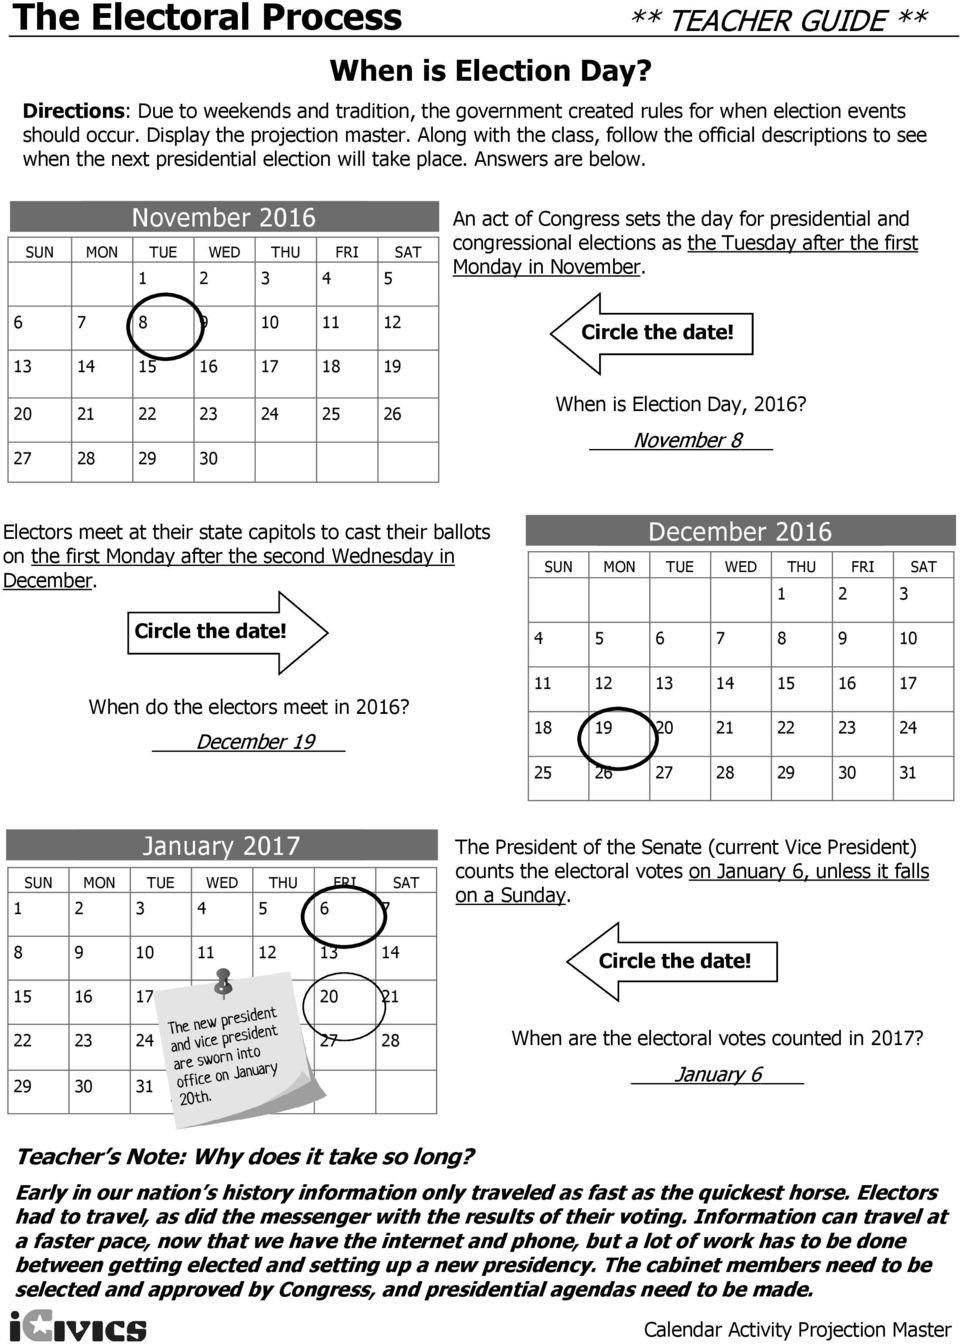 Election Day Worksheets the Electoral Process Step by Step the Worksheet Activity